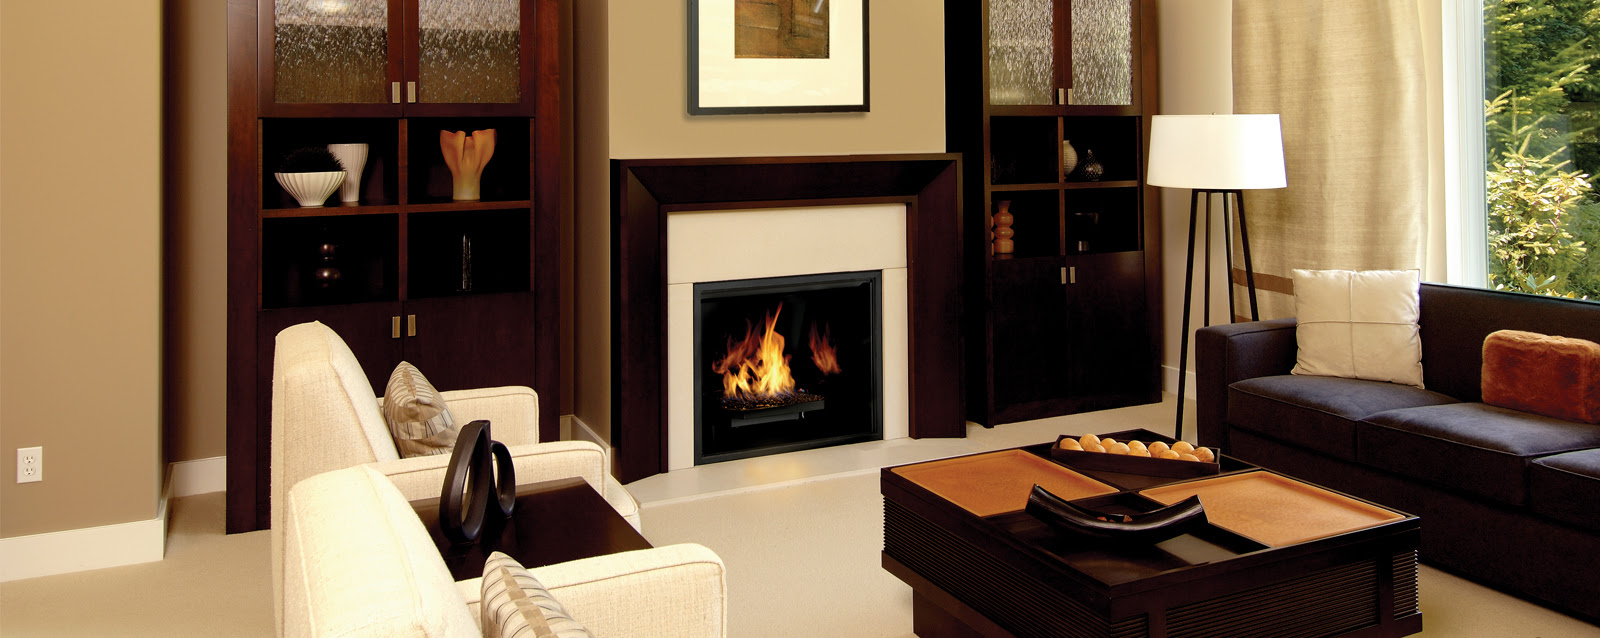 Fireplaces Unlimited Fireplace Inserts In Burnaby Vancouver Canada